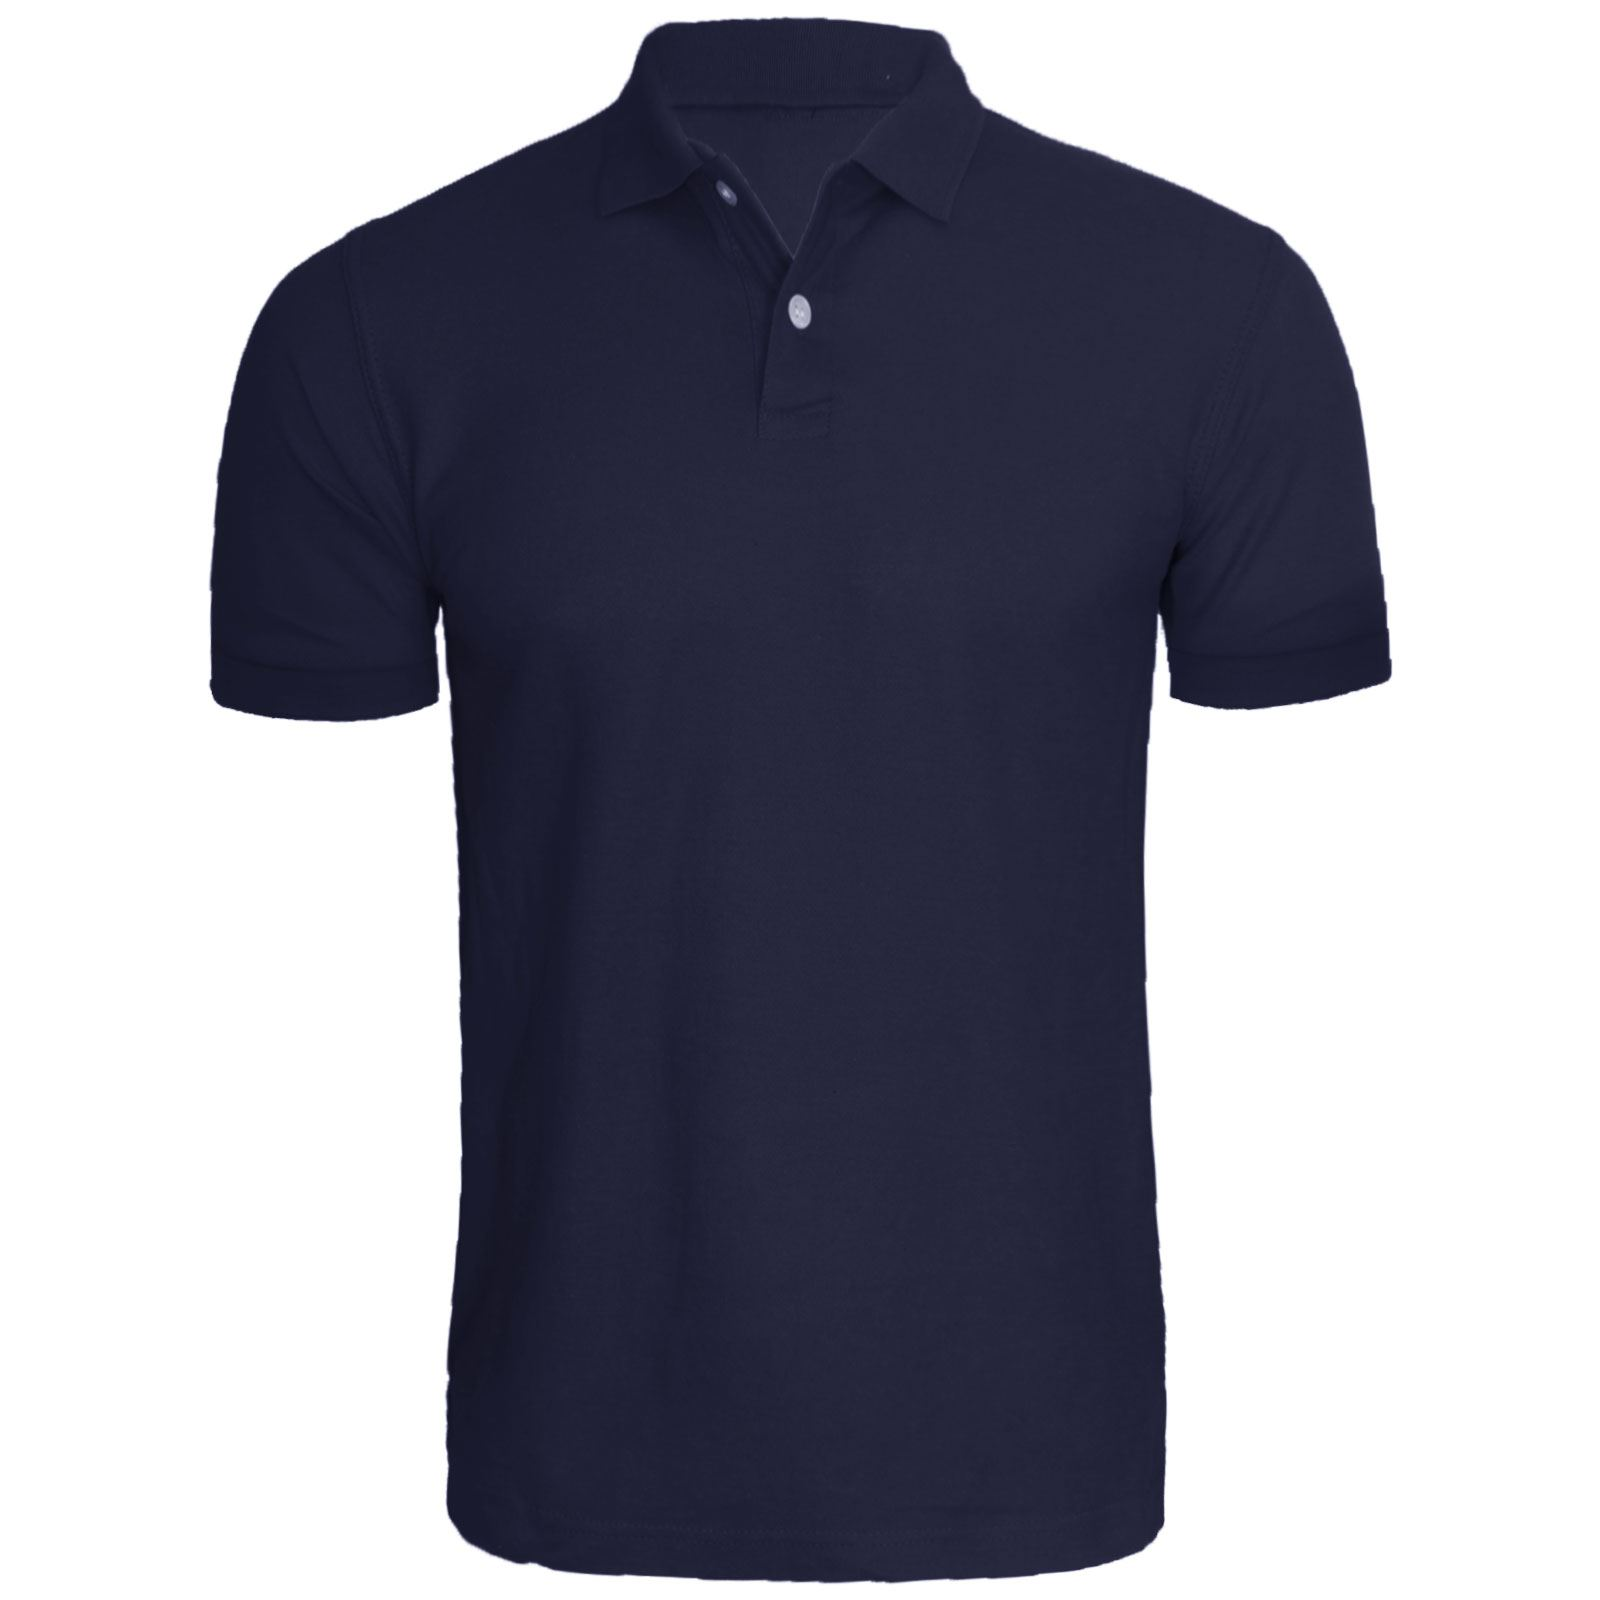 NEW MENS SHORT SLEEVE PLAIN POLO TSHIRT TOP GOLF SHIRT ...